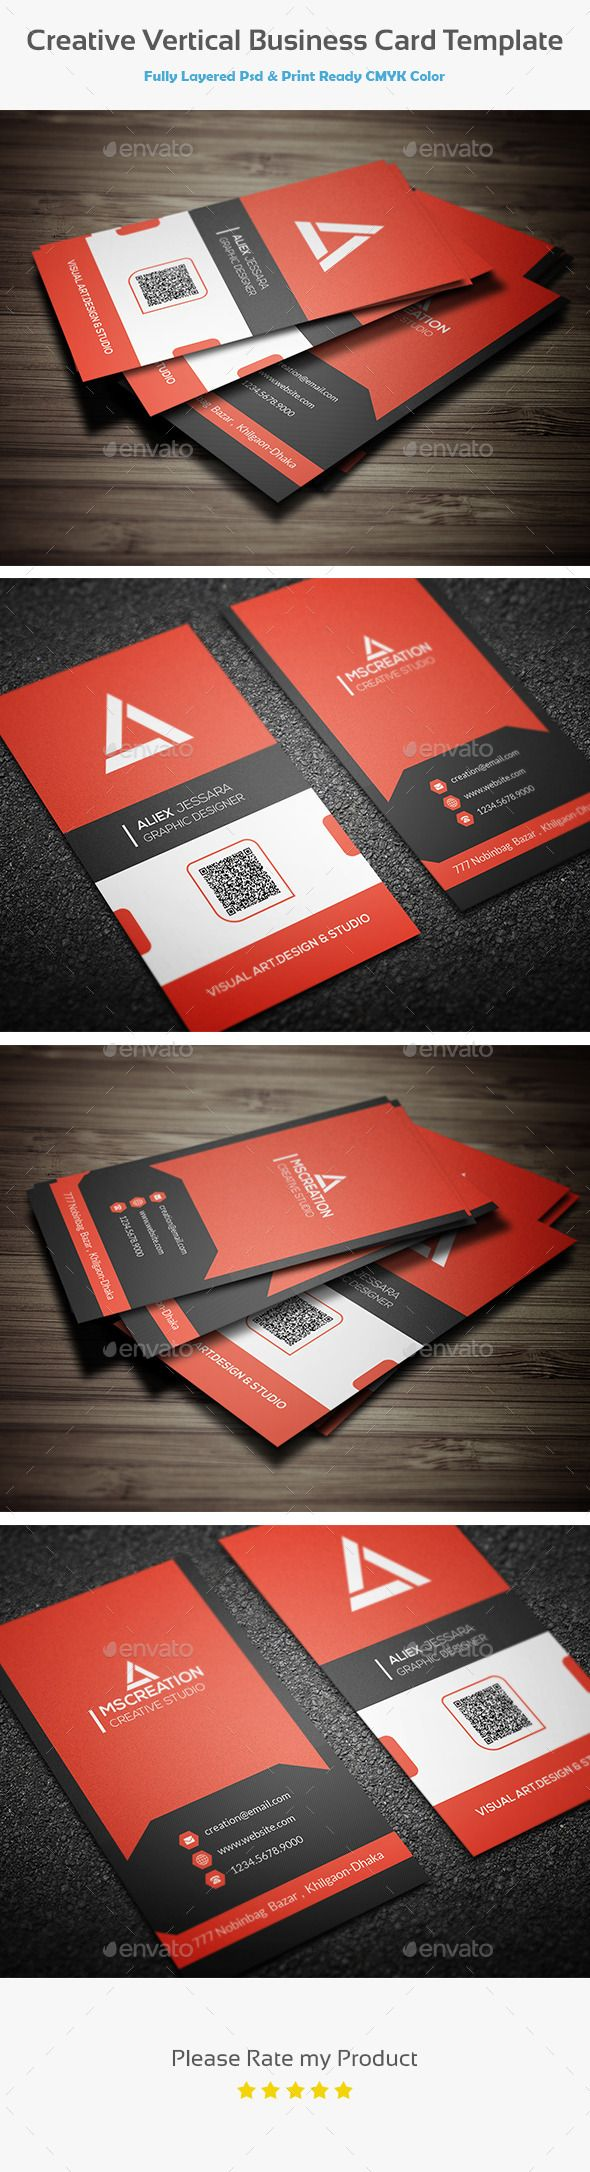 Best 25 vertical business cards ideas on pinterest business creative vertical business card template magicingreecefo Images